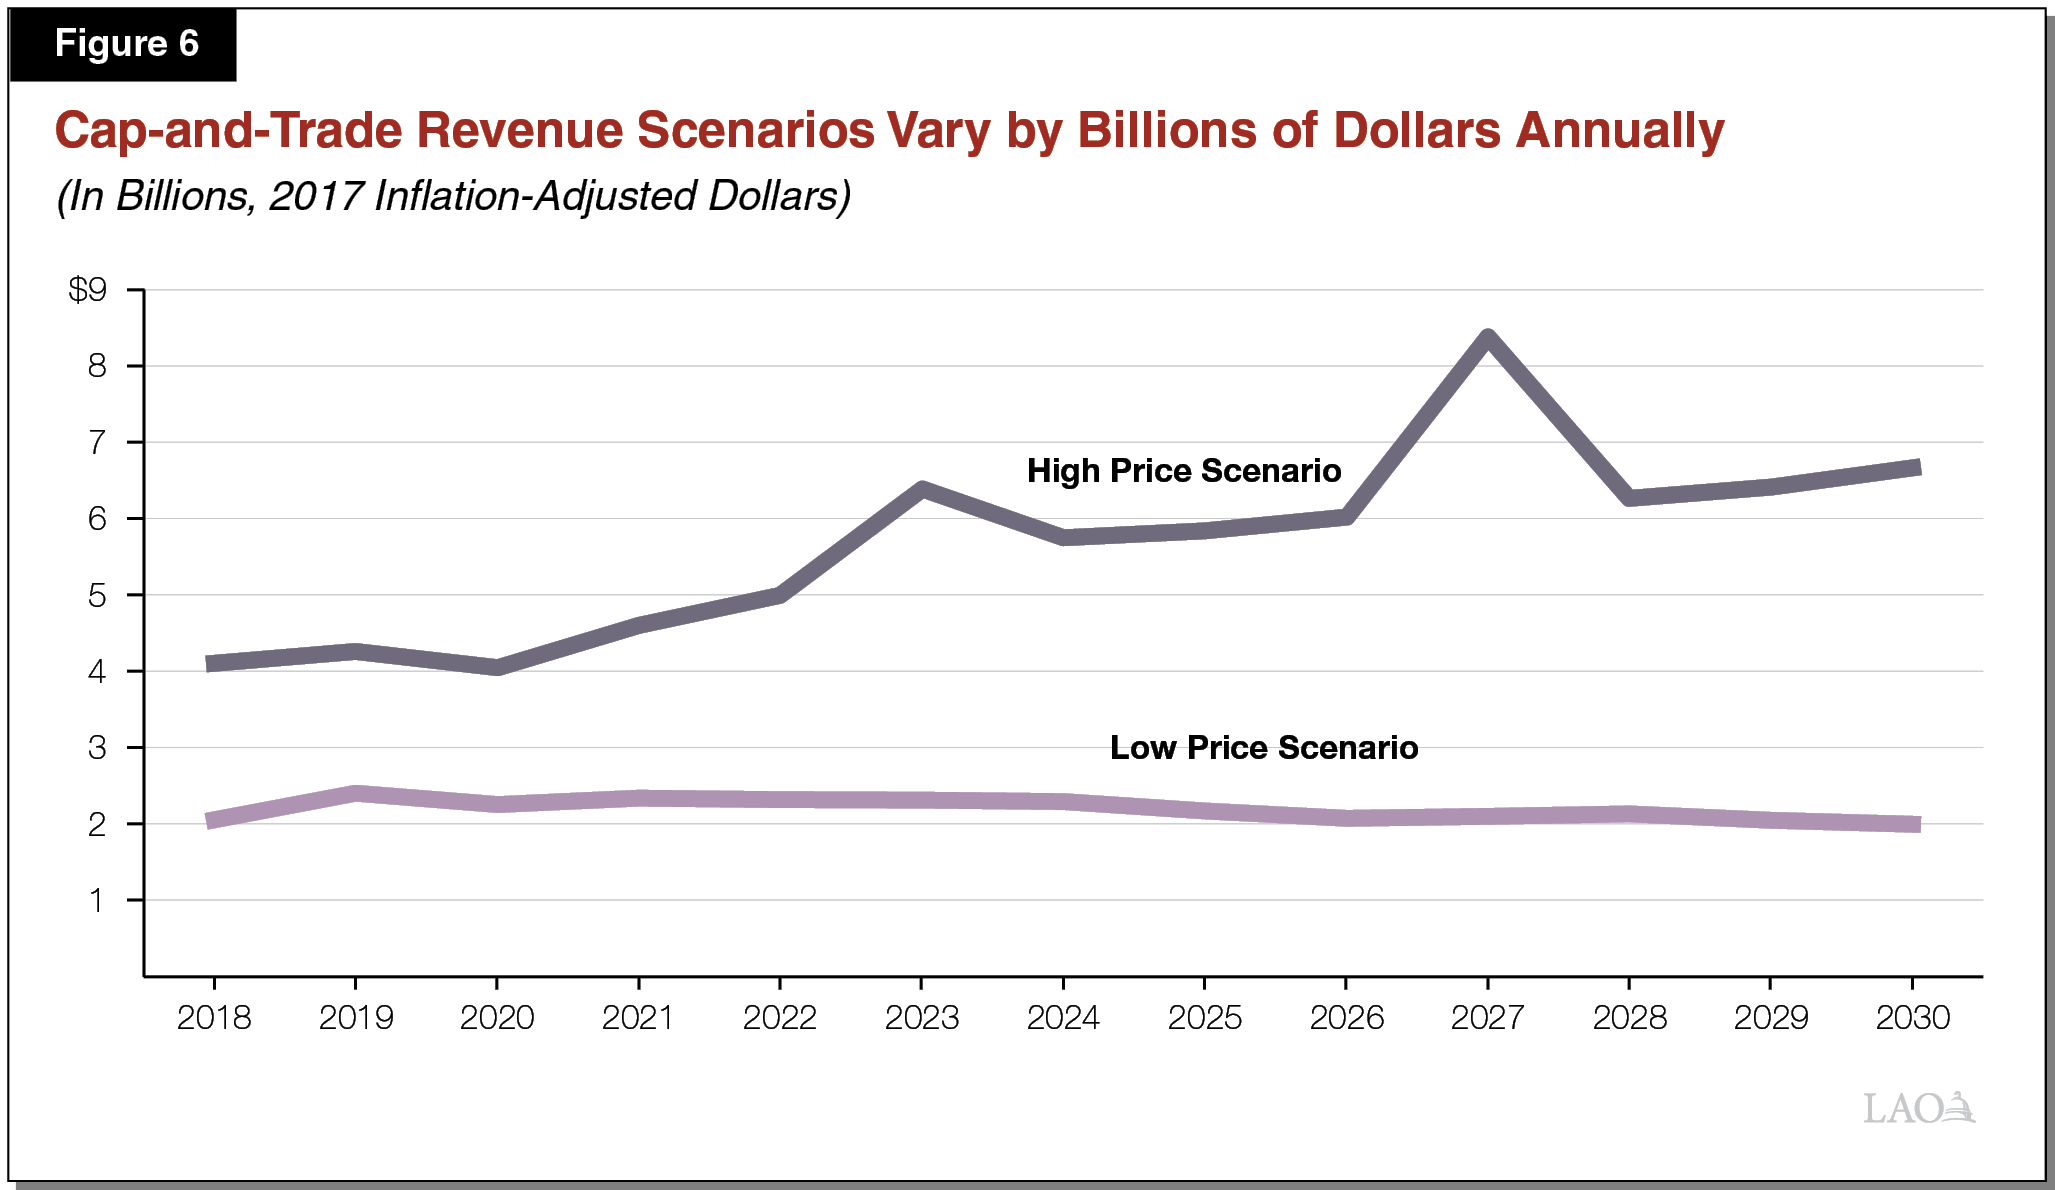 Figure 6 - Cap-and-Trade Revenue Scenarios Vary by Billions of Dollars Annually